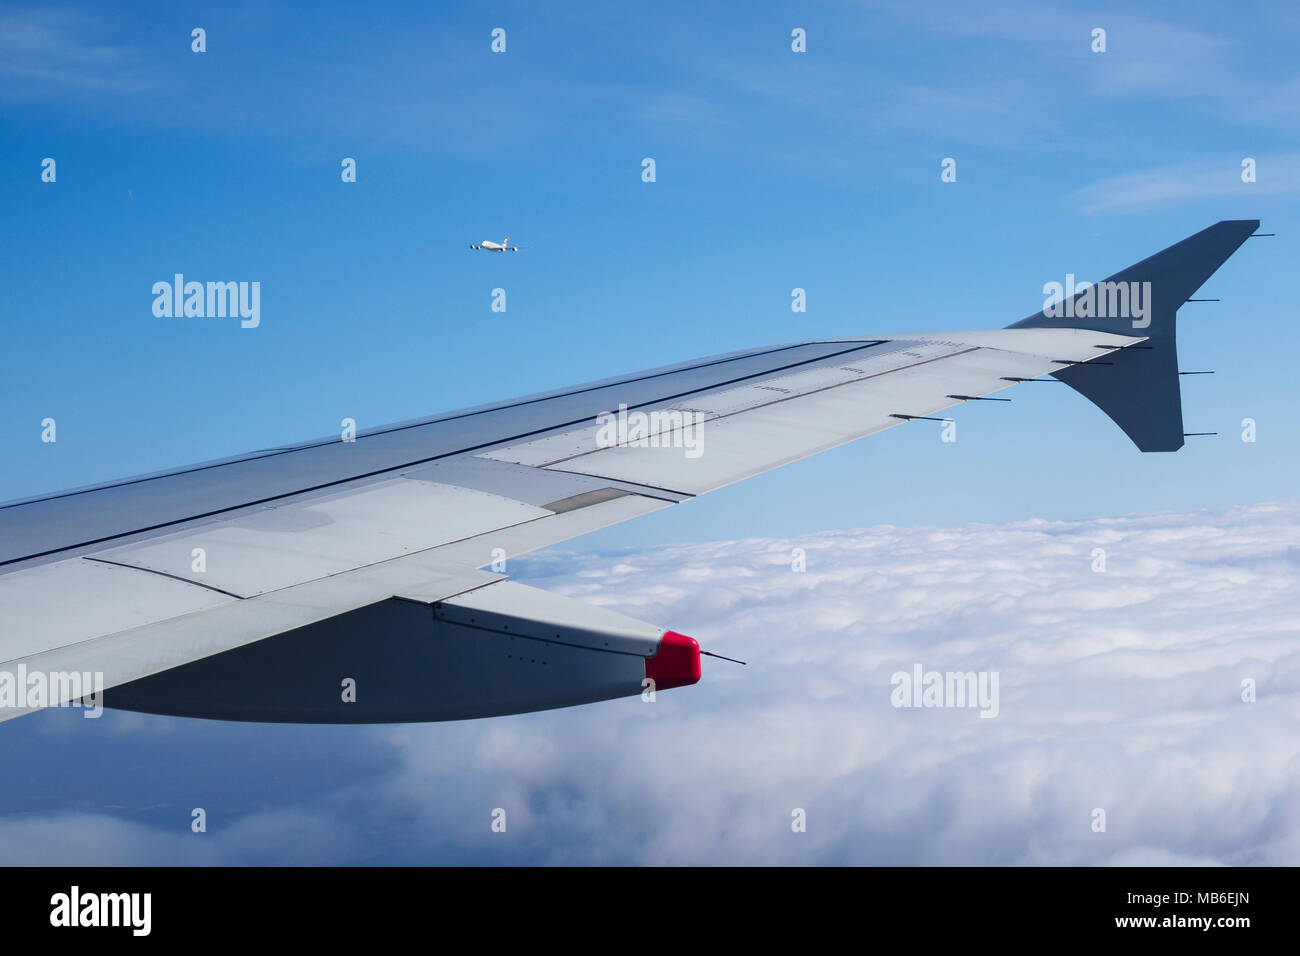 View from a British Airways Airbus A320 shortly after takeoff from Heathrow Airport showing a close encounter with another aircraft - Stock Image